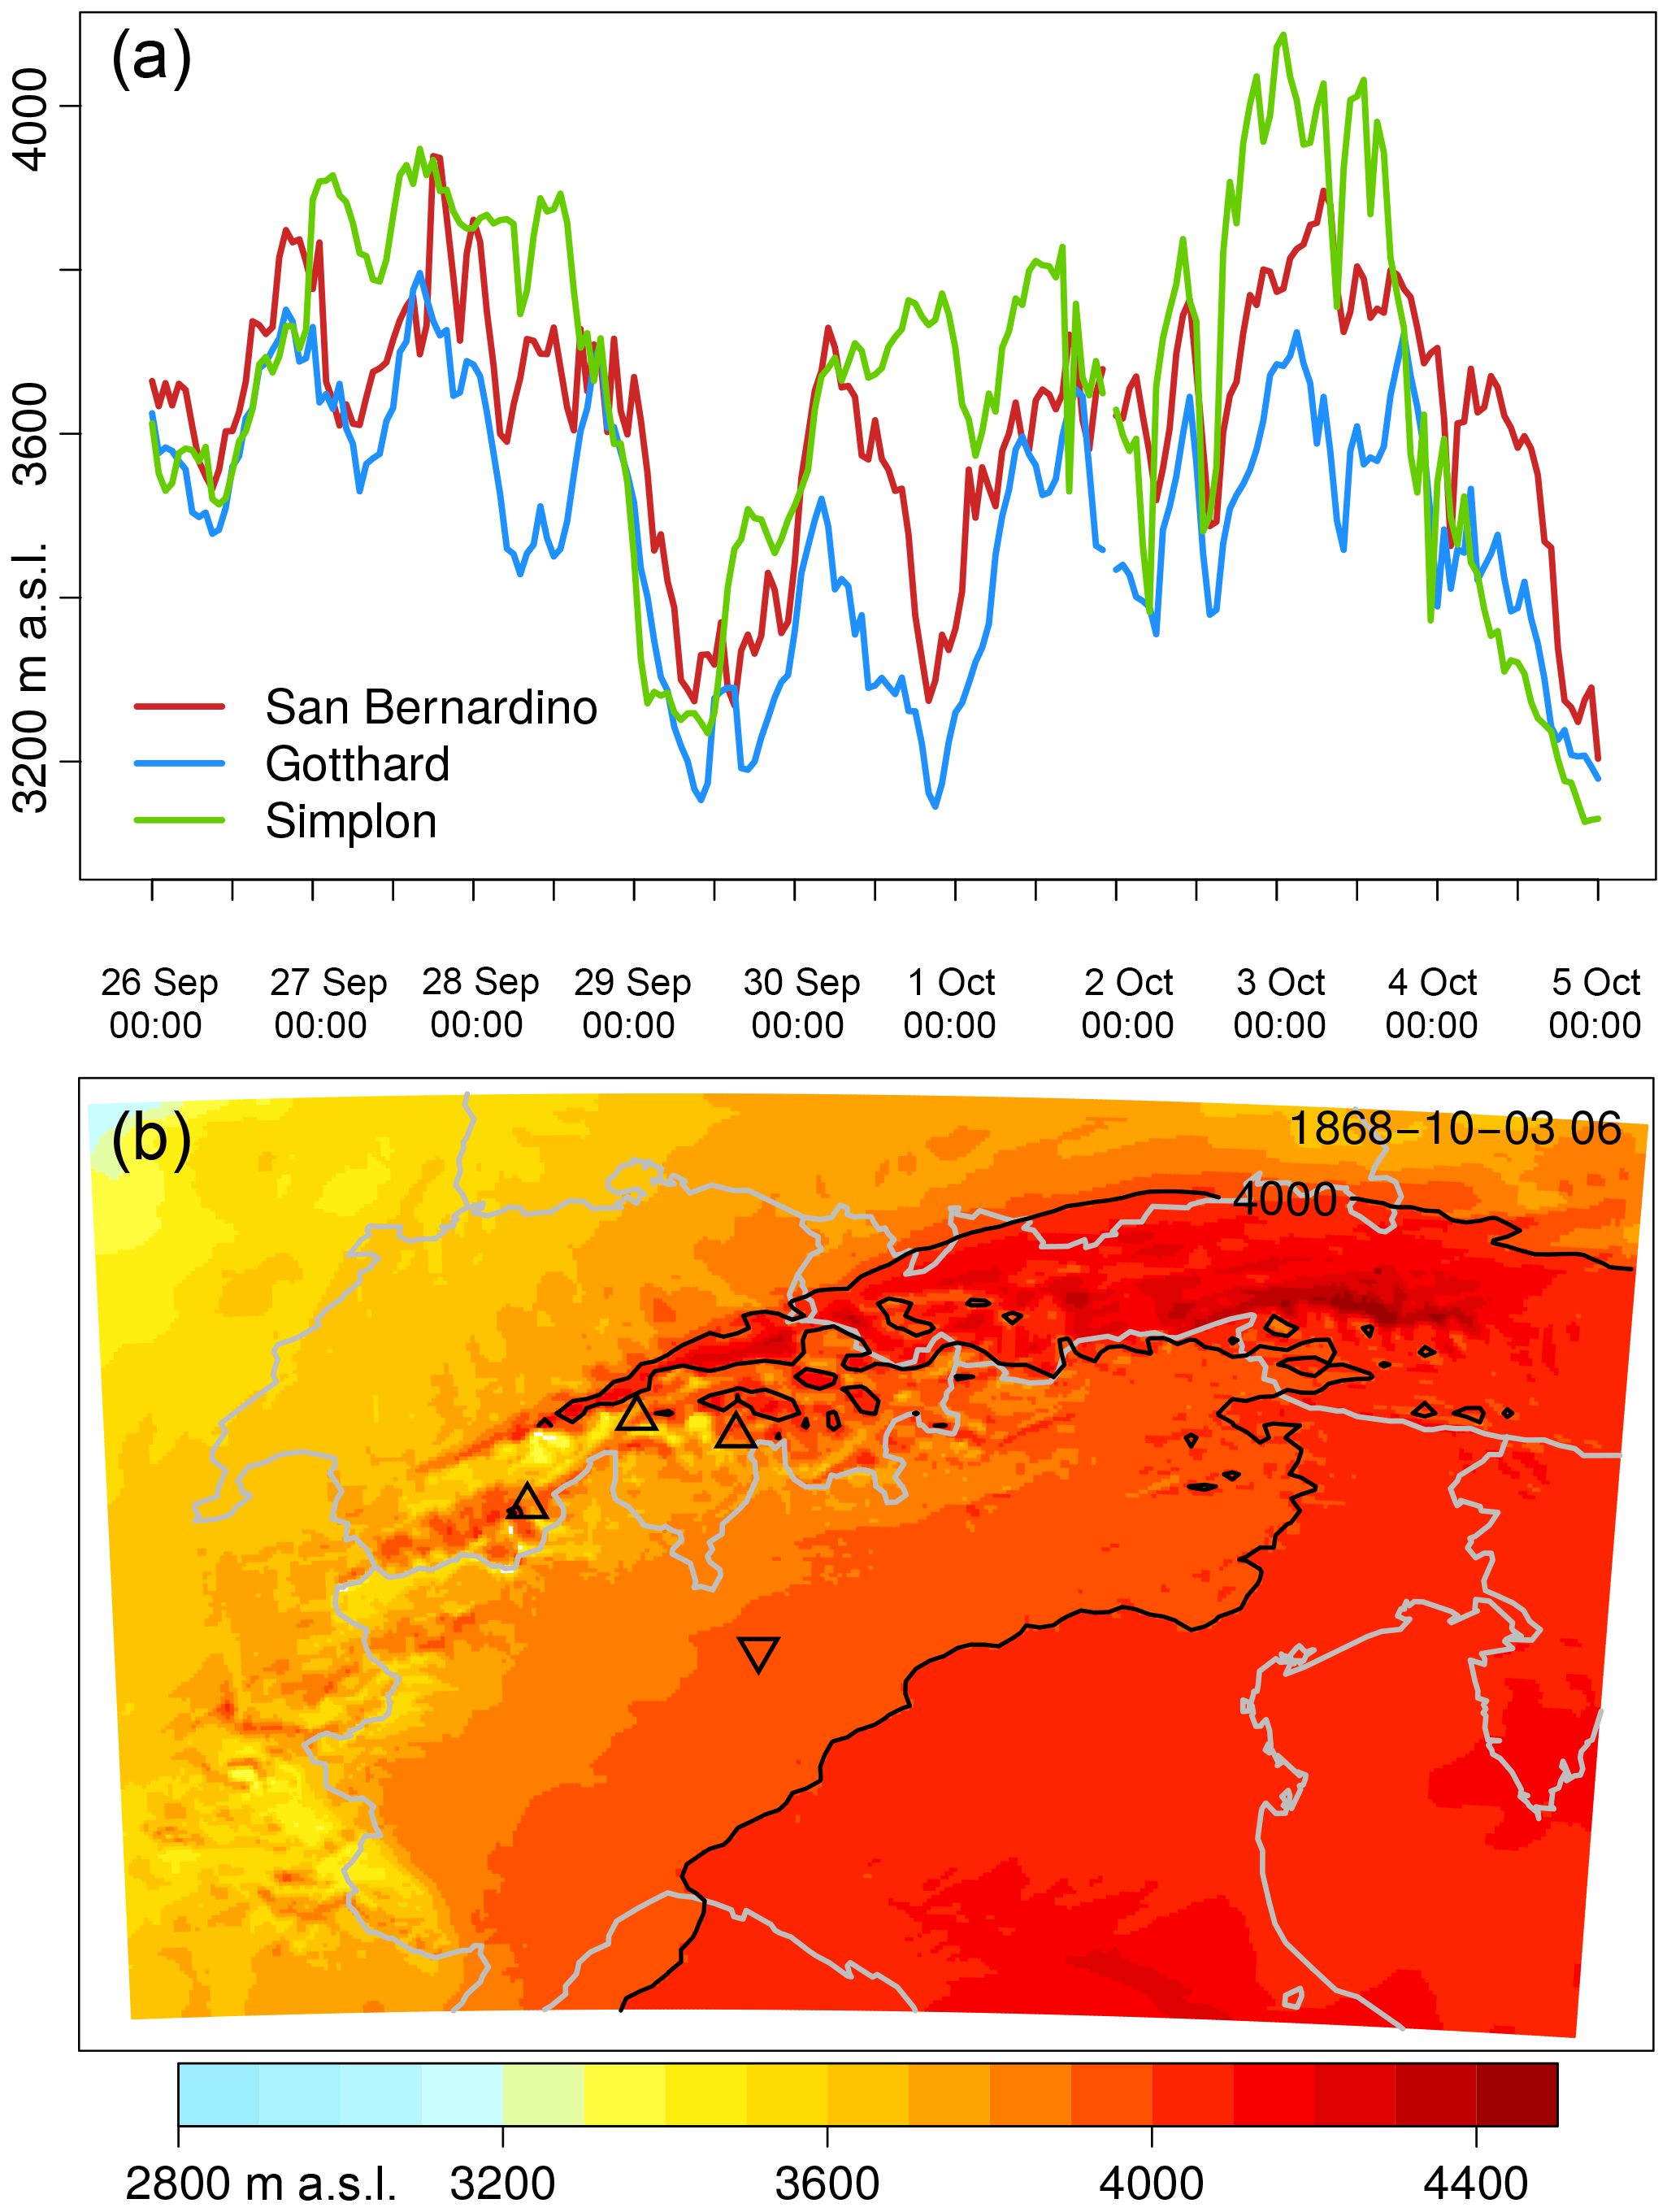 NHESS - Reconstruction and simulation of an extreme flood